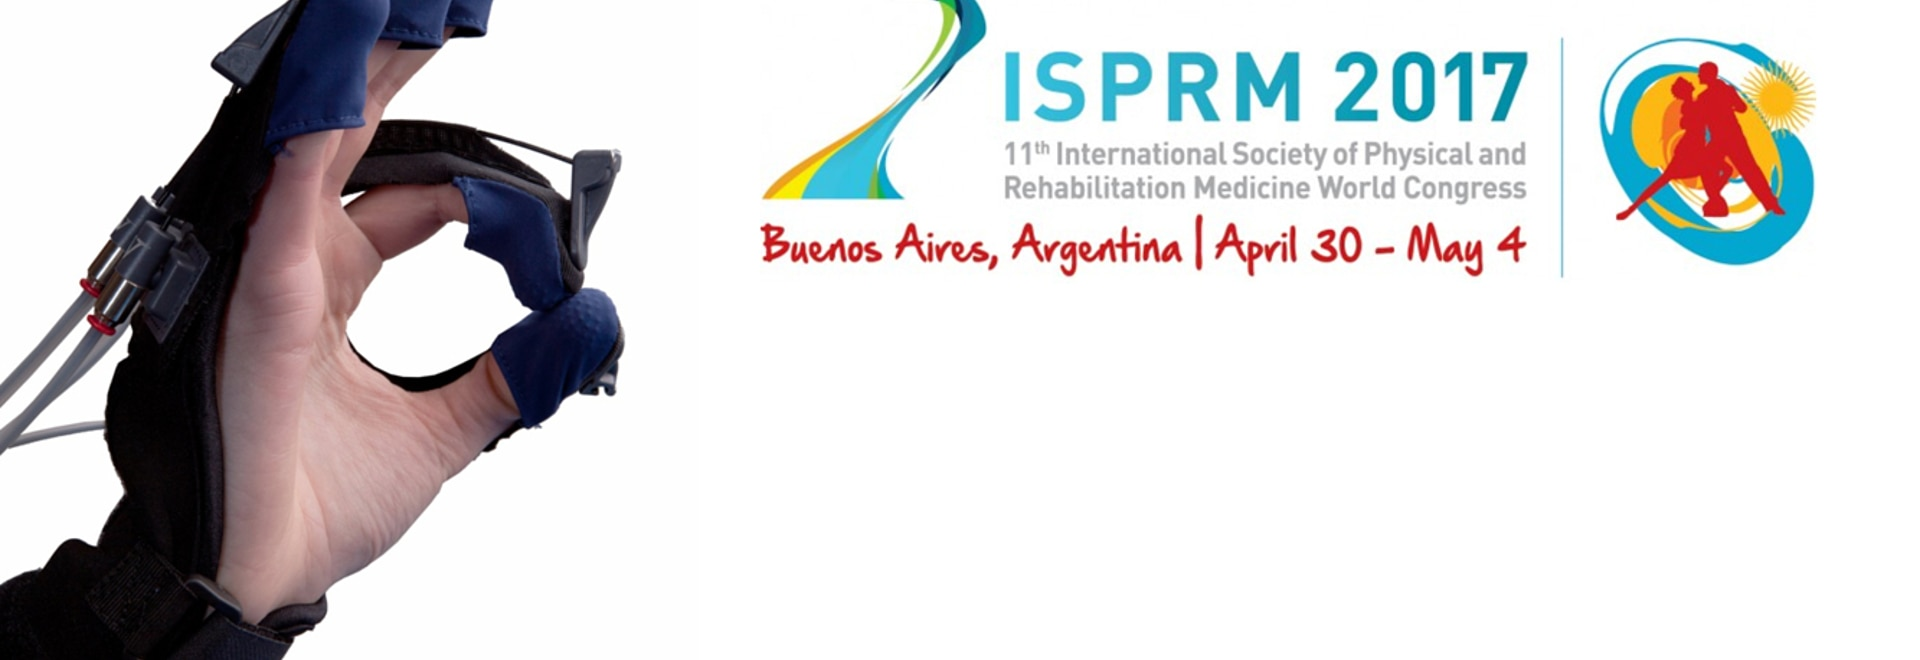 Gloreha SINFONIA at ISPRM in Buenos Aires: Save the date!